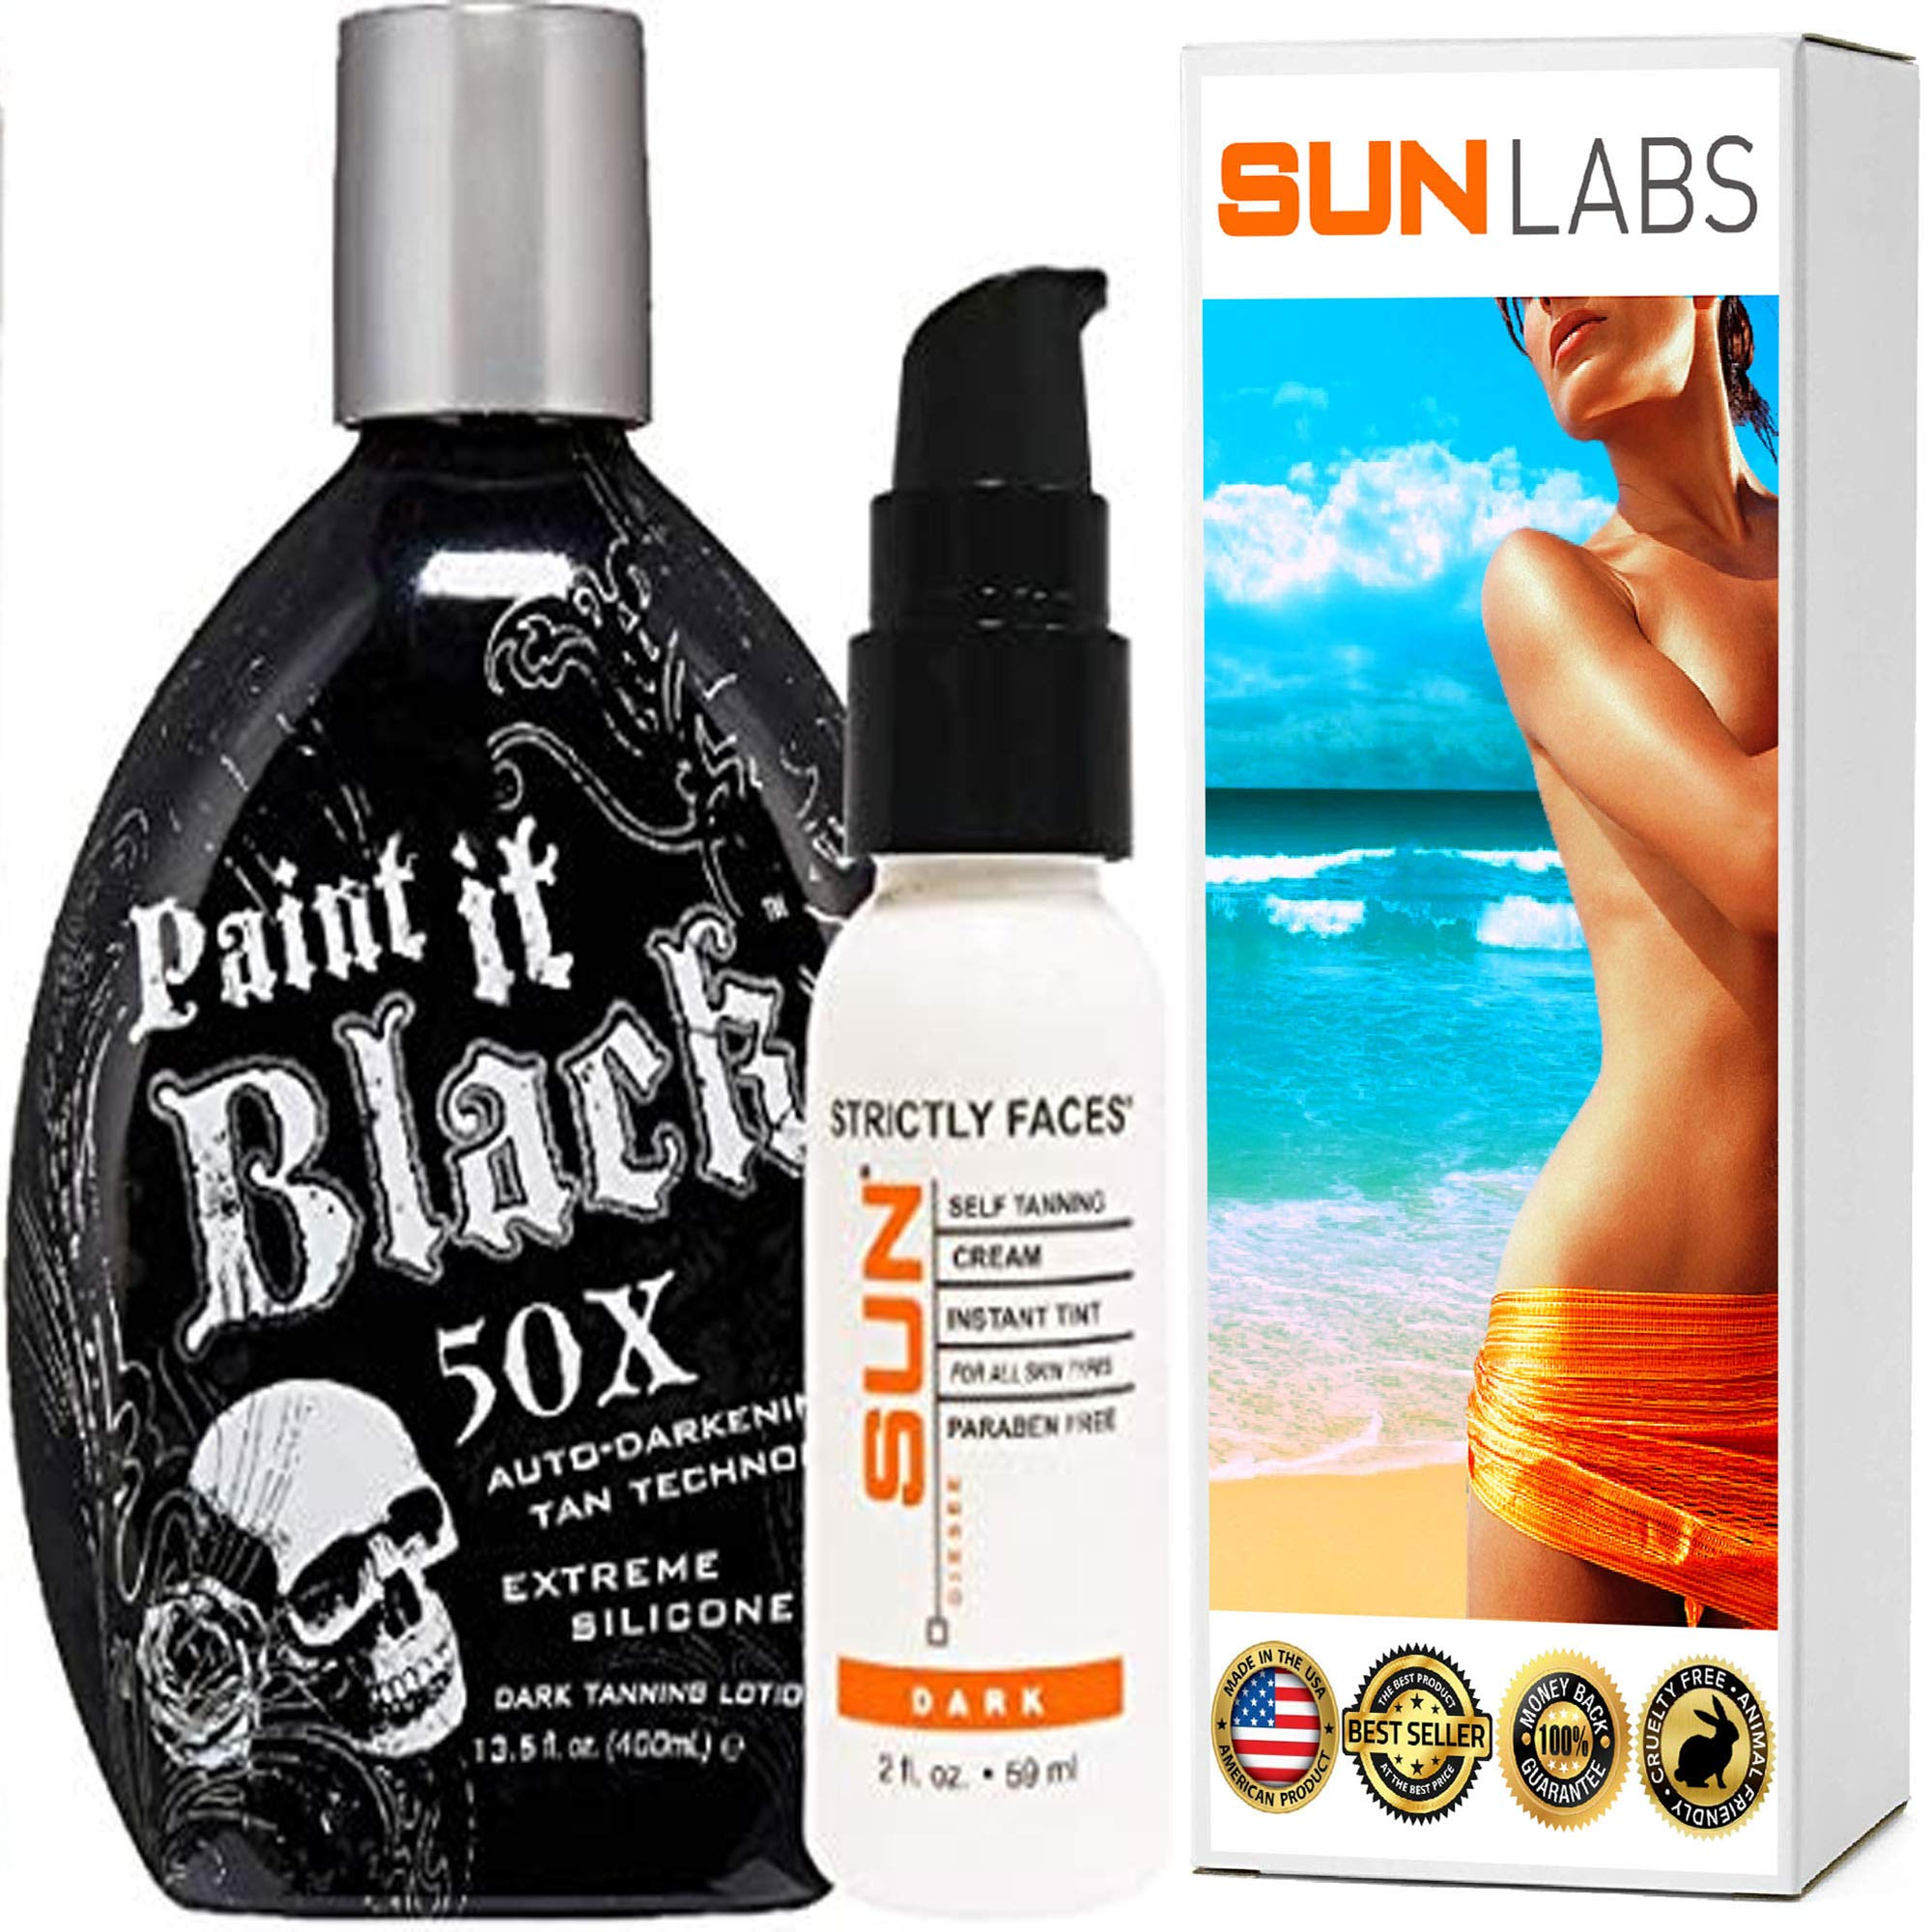 Millennium Tanning Paint It Black 50X,13.5 Oz | Strictly Faces Dark Self Tanner (lvl 3) 2 Fl Oz by Sun Laboratories - Body and Face